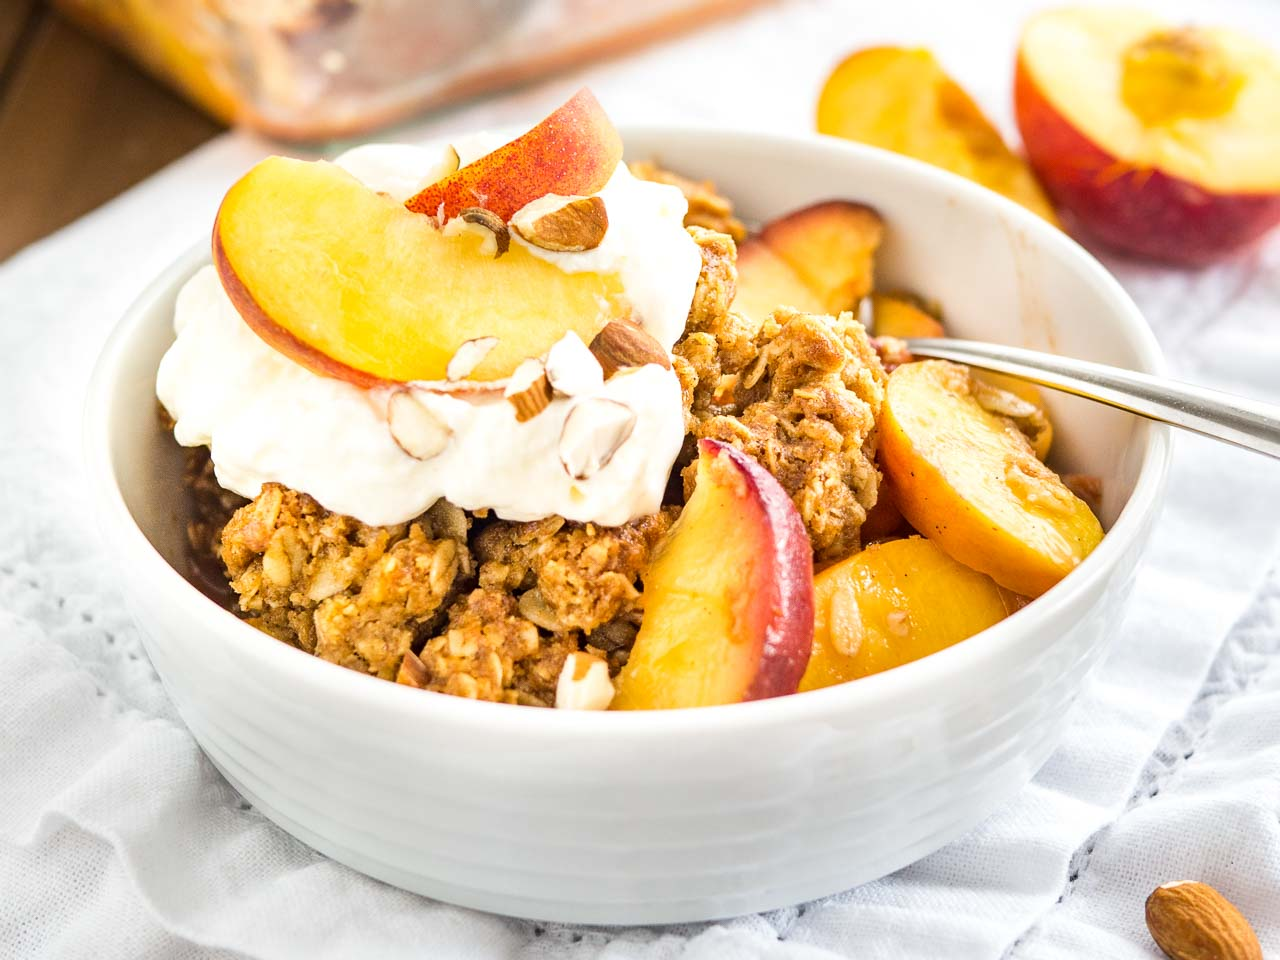 Peach Crisp is made with fresh peaches and topped with a crunchy oatmeal brown sugar streusel! This easy summer dessert is the ultimate comfort food.